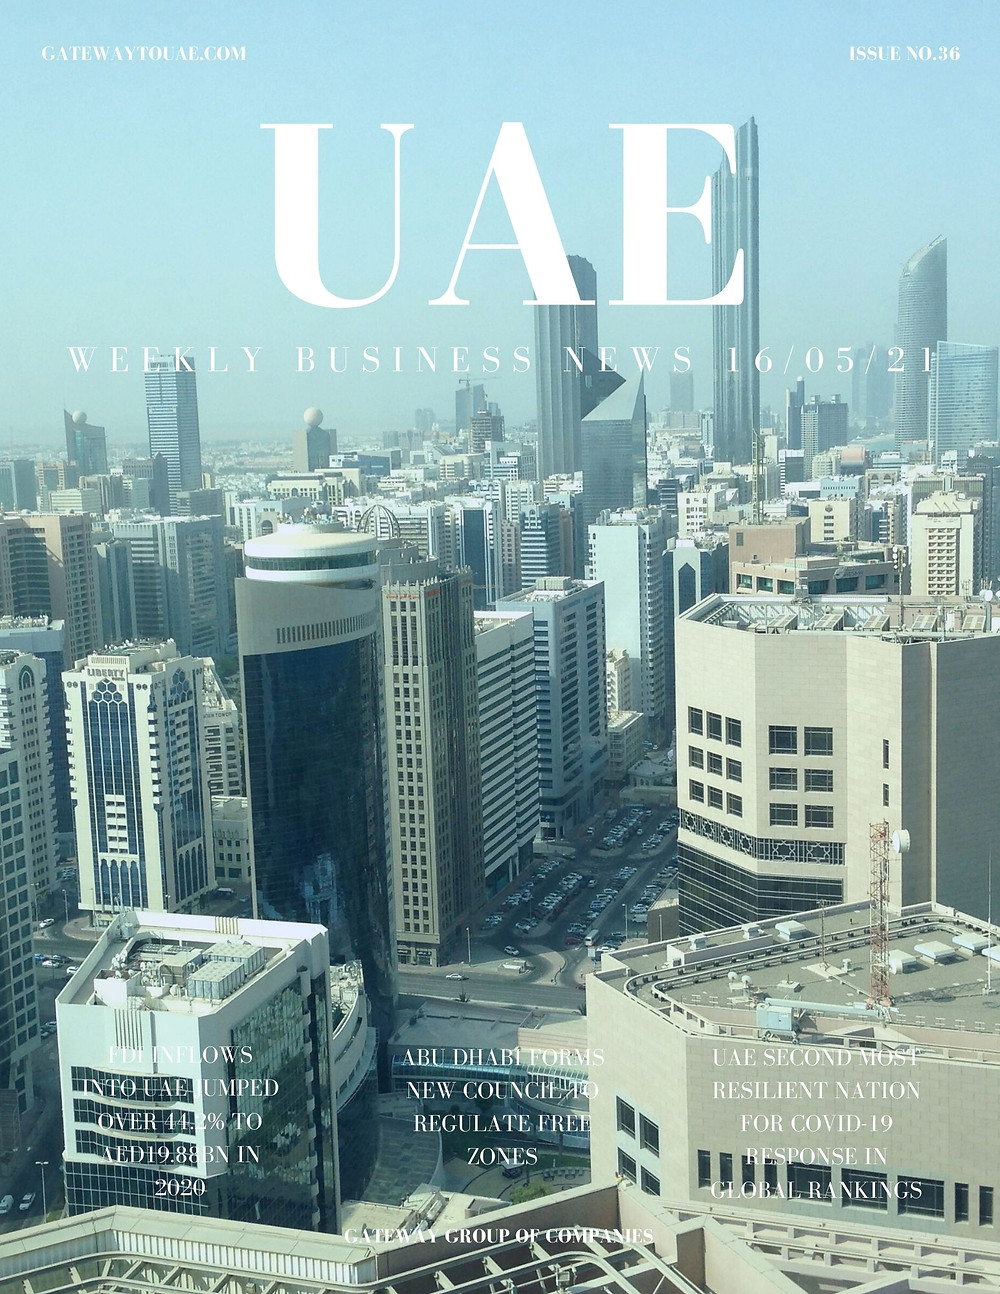 UAE weekly business news headlines 16th May 2021 Issue 36 Gateway Group Of Companies Abu Dhabi Dubai weekly magazine company formation business setup local sponsor service agent visas company formation authority trade licence license